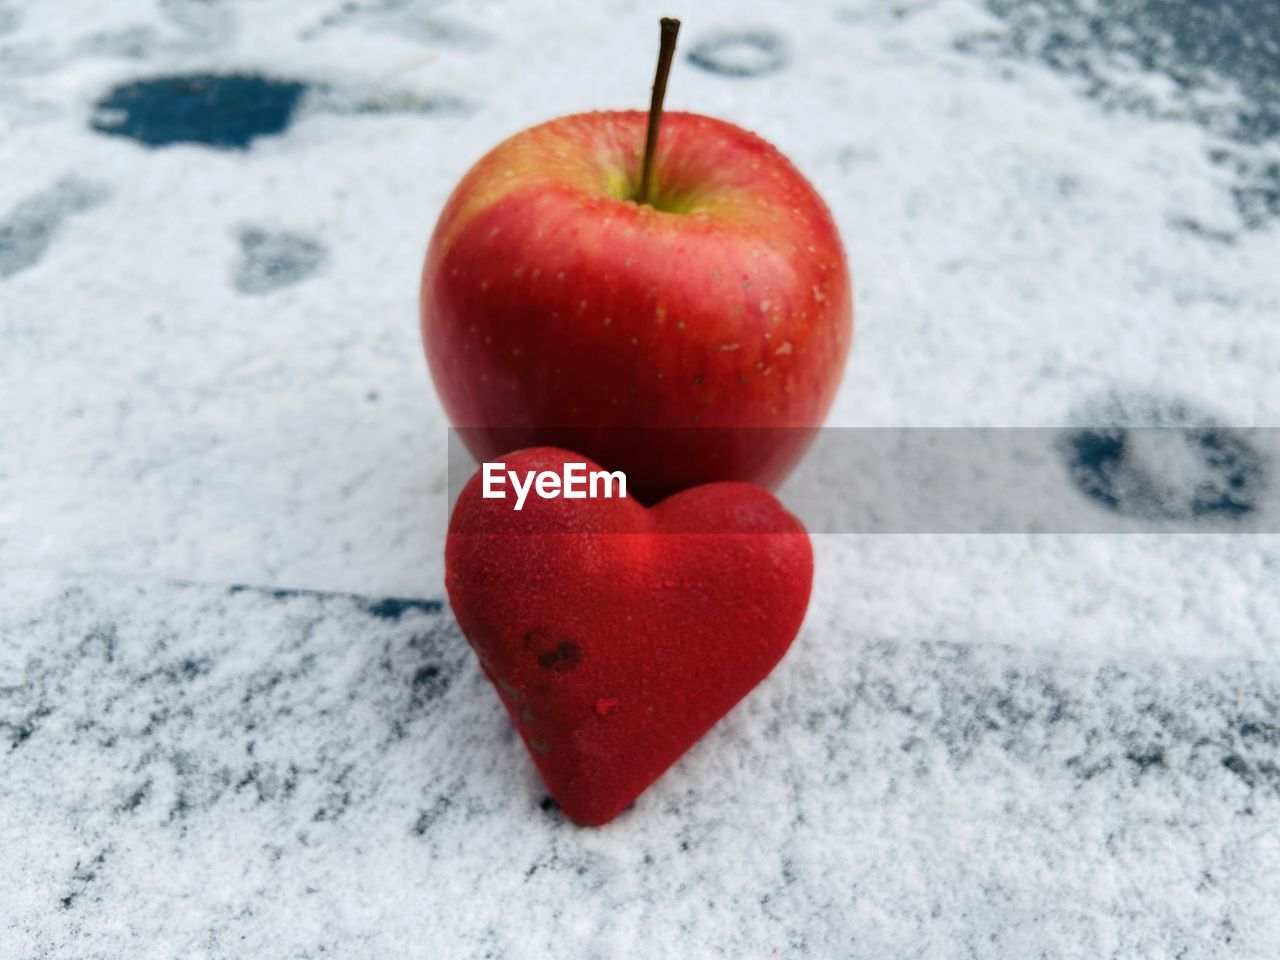 CLOSE-UP OF RED APPLE ON HEART SHAPE IN WINTER